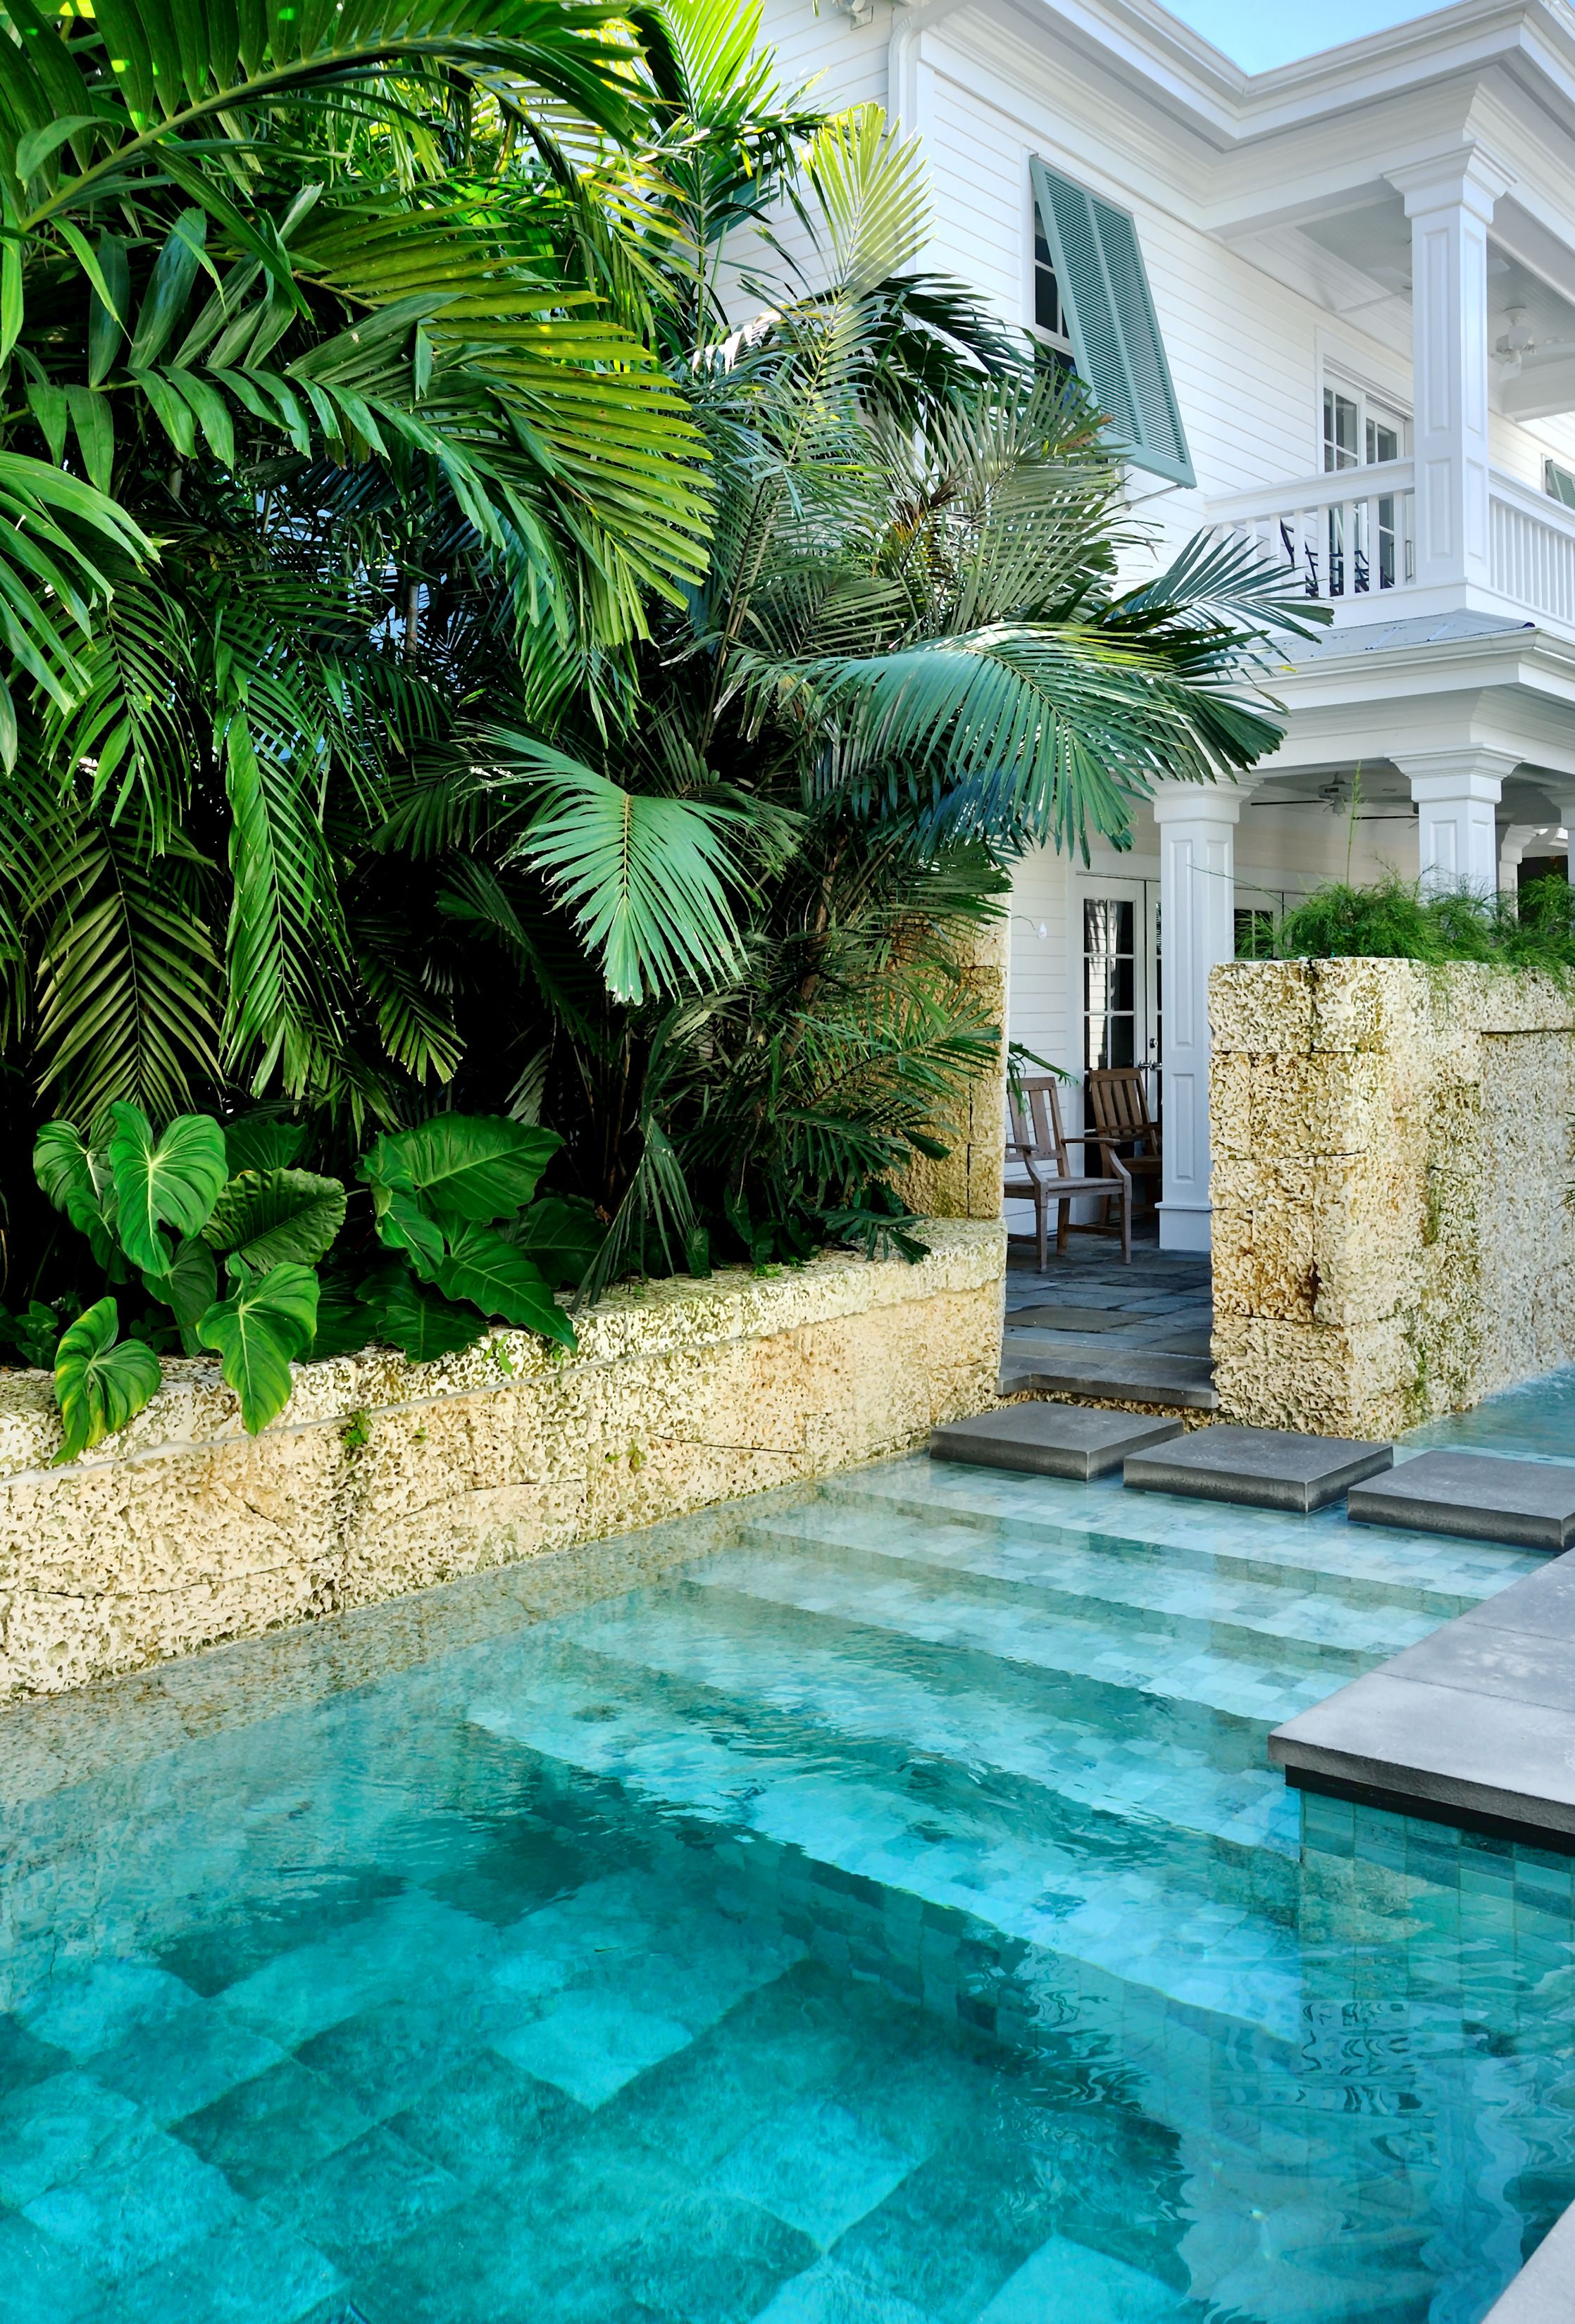 Piscine design dans un jardin tropical | Piscine | Pinterest ...